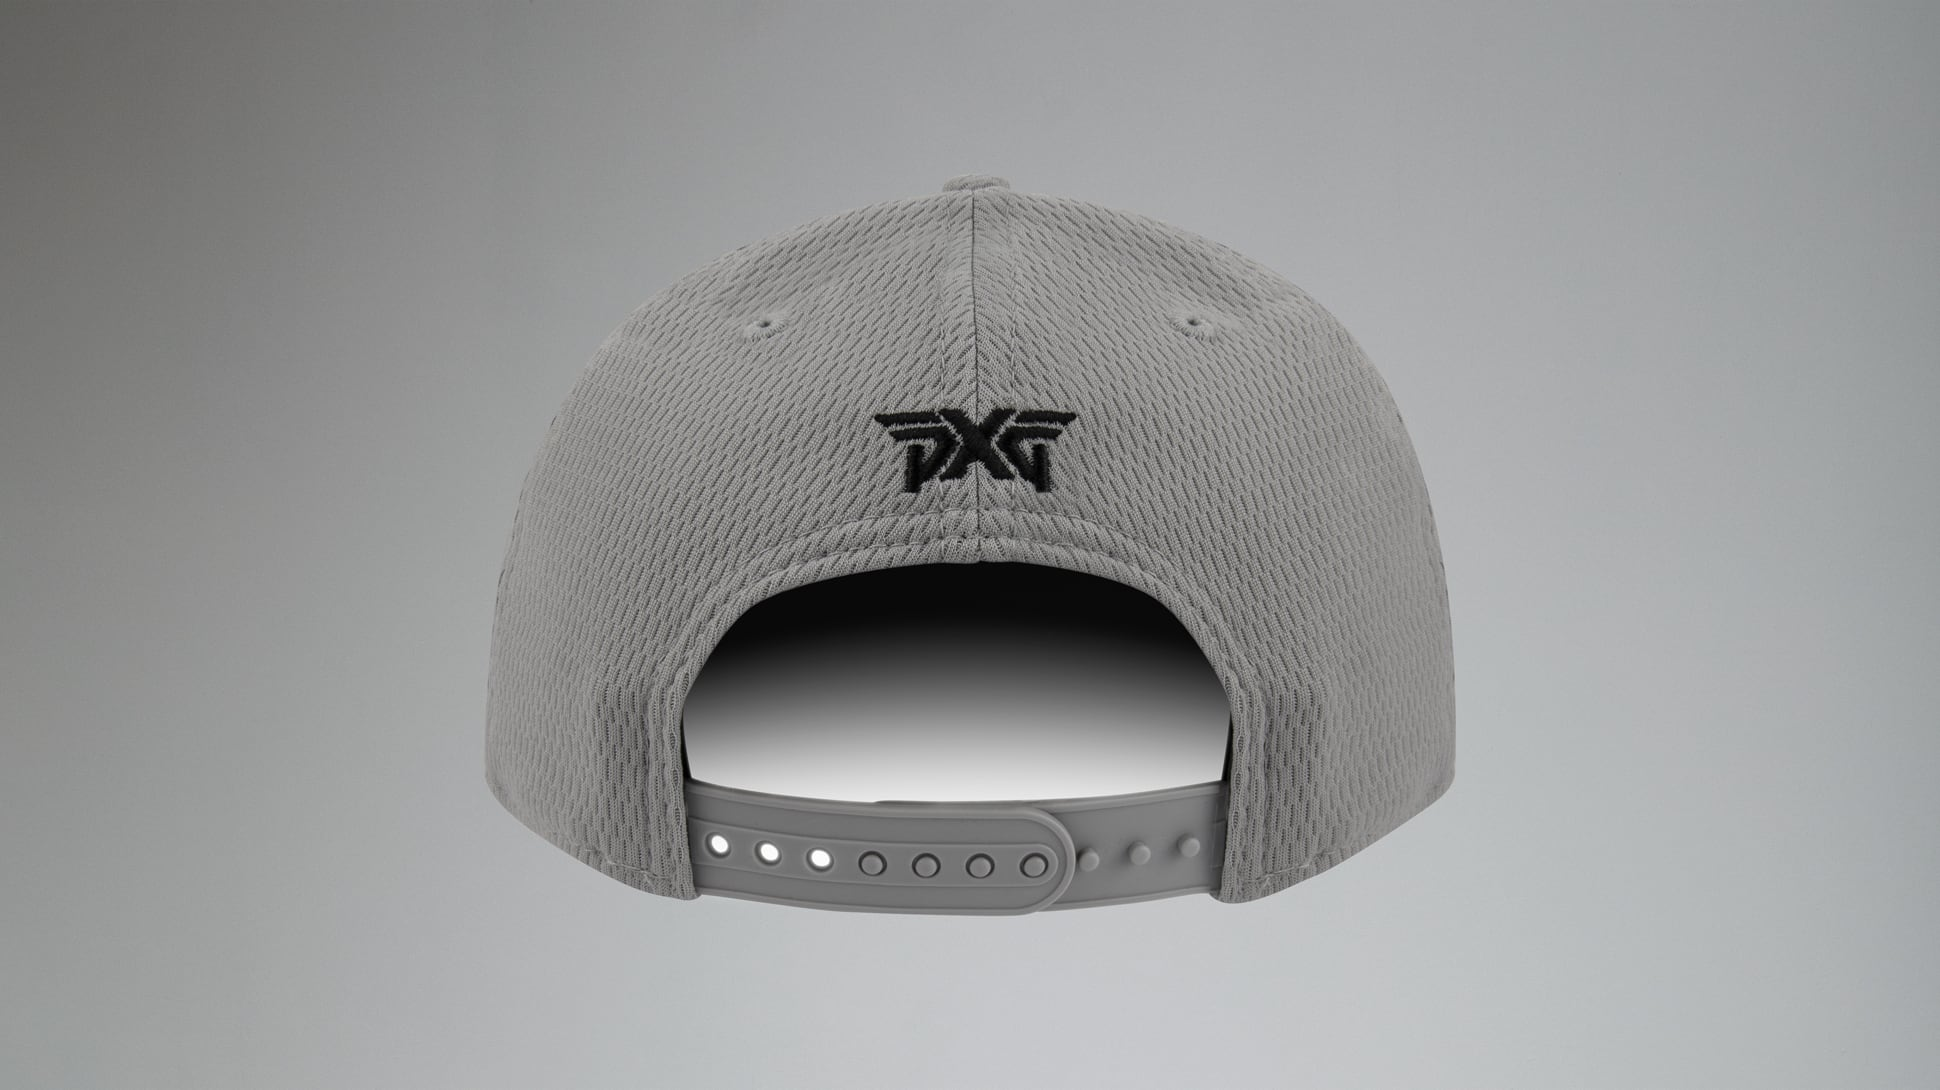 Performance Line 9FIFTY Low Profile Cap Image 2